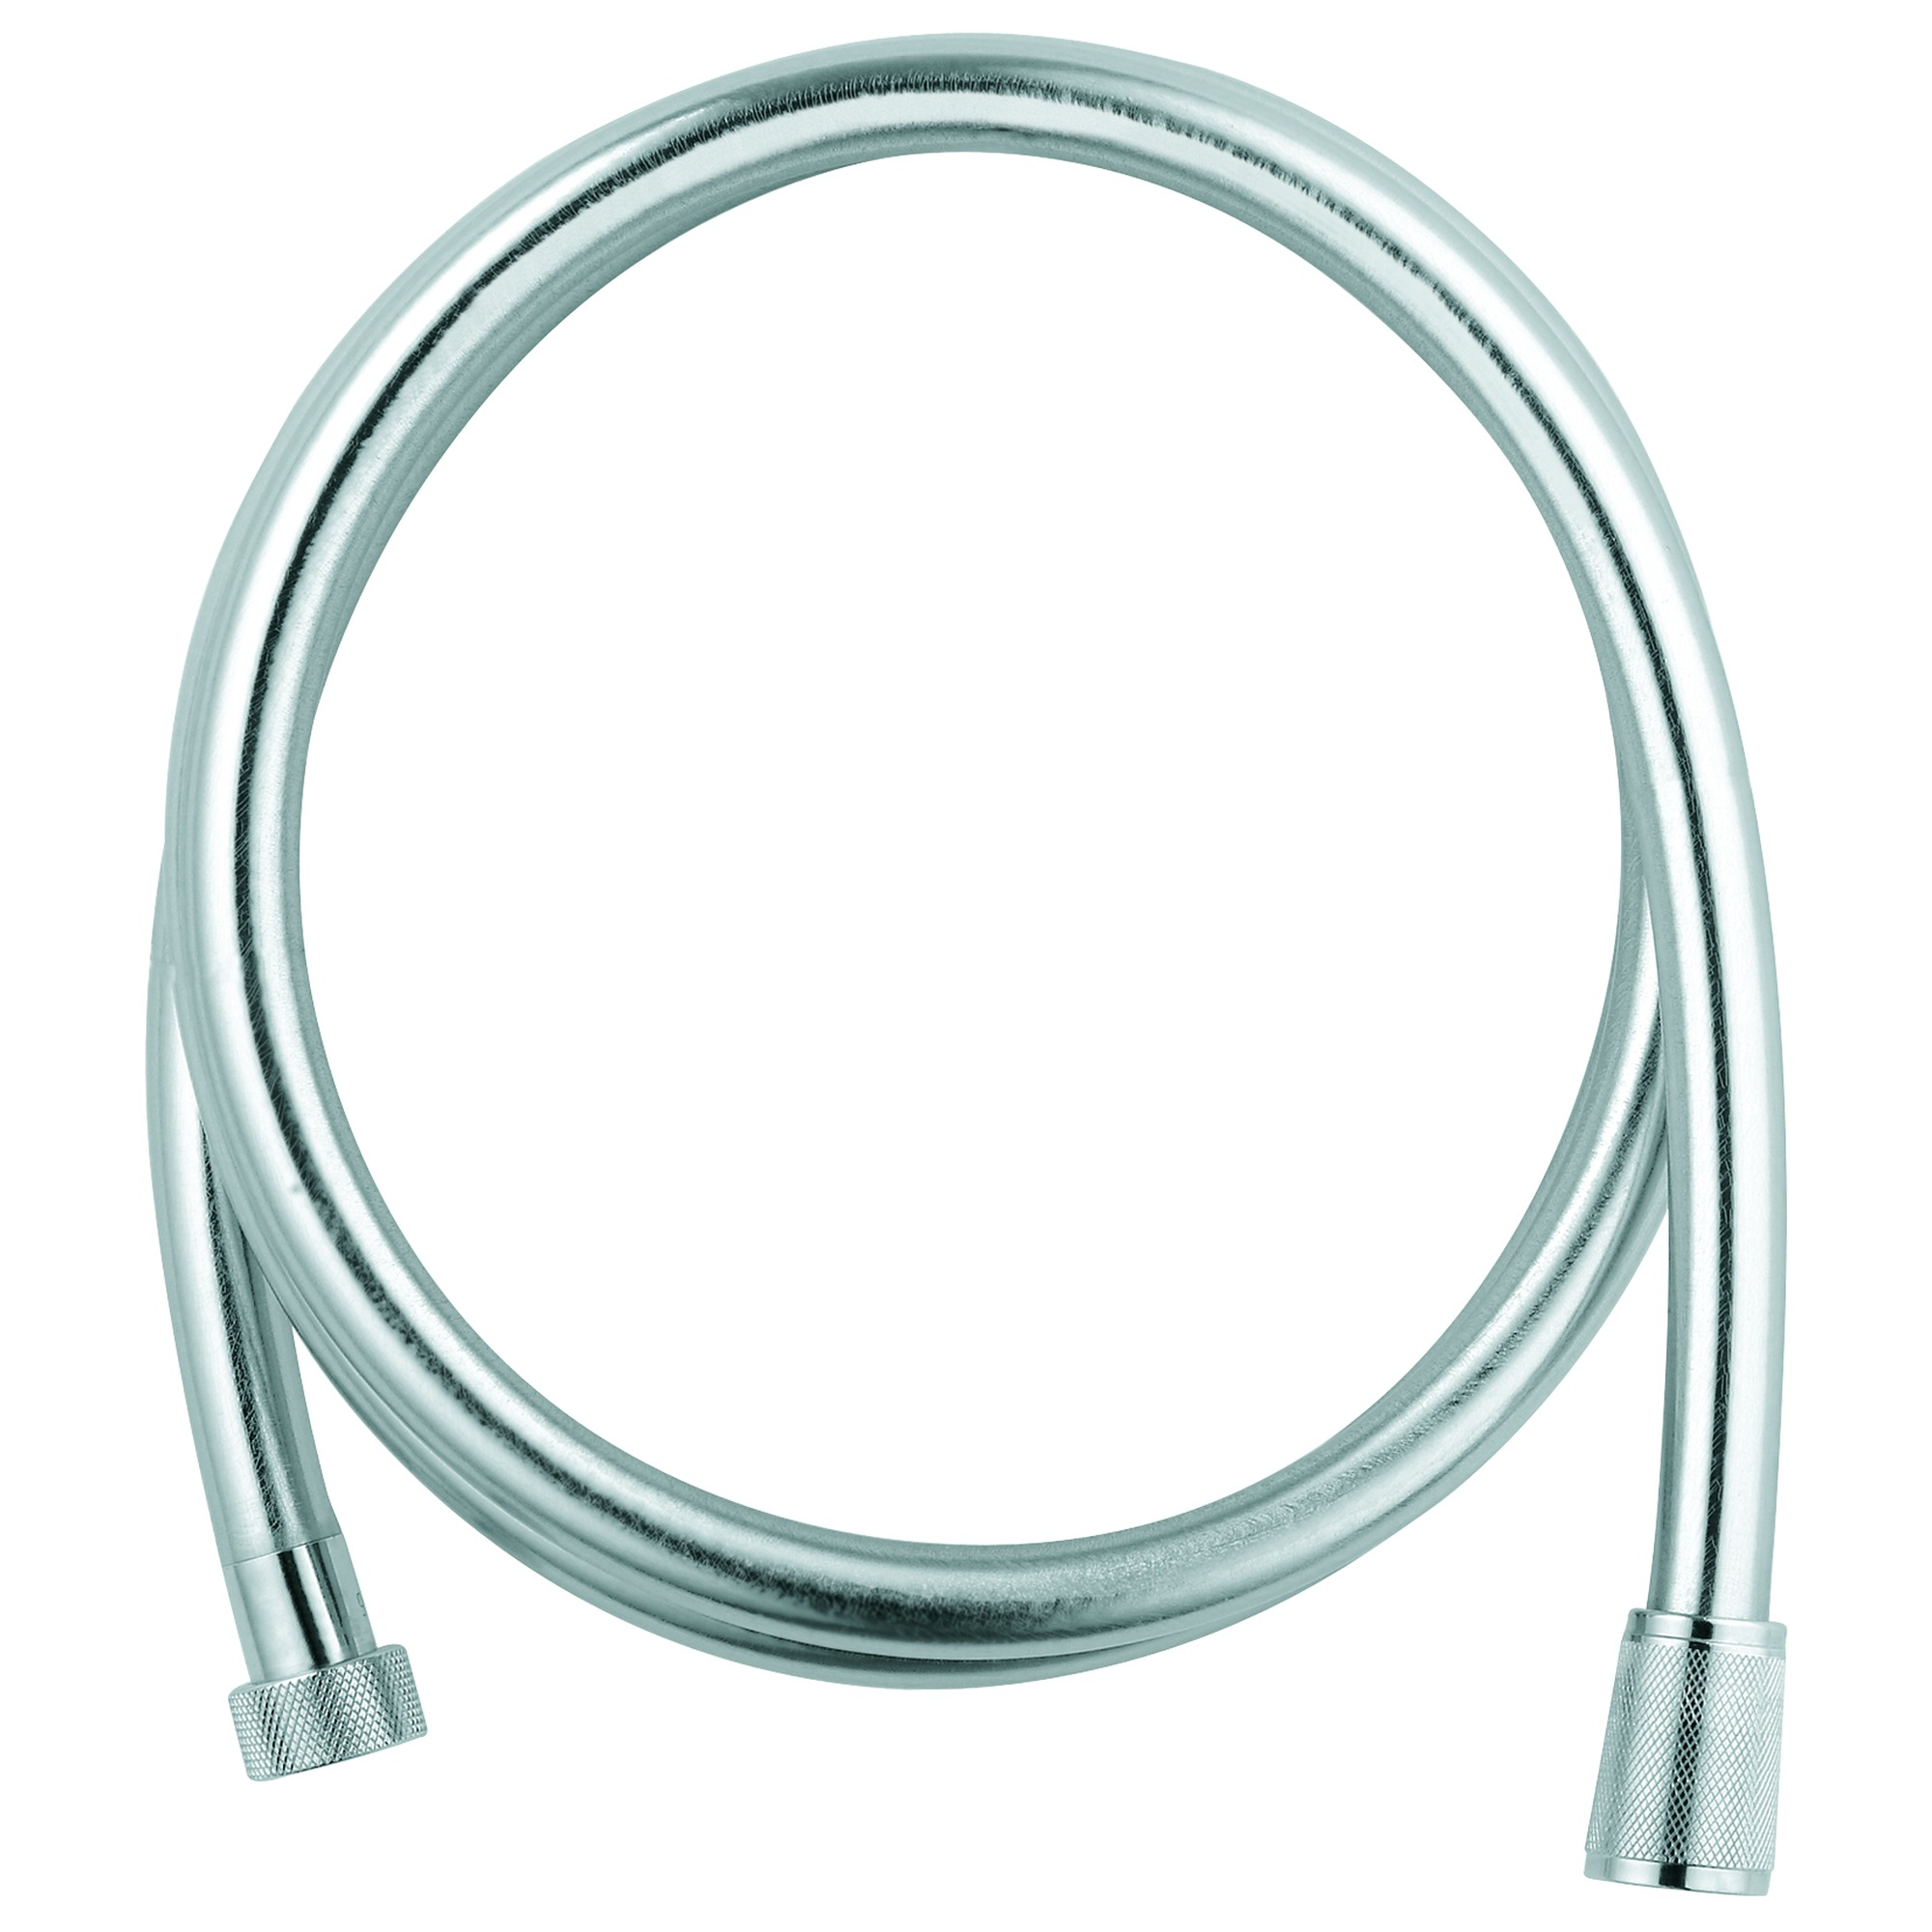 Grohe doucheslang silver 1-2x150cm zilver